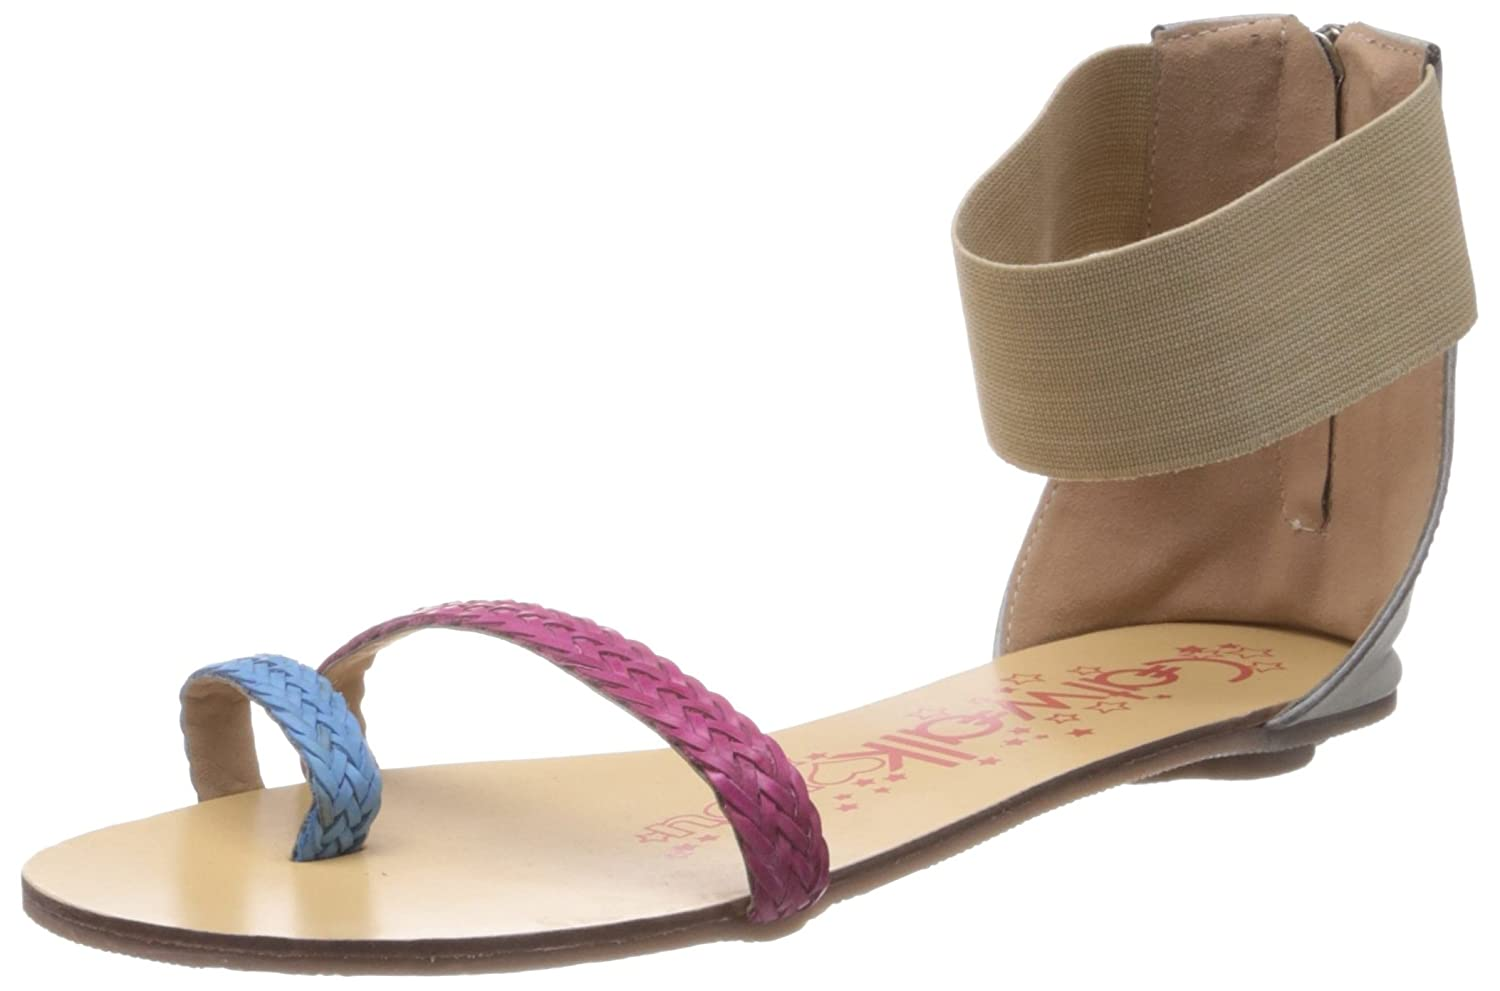 028b4e01a1f09 Buys Women Footwears at Amazon under Rs 799 - Sandals